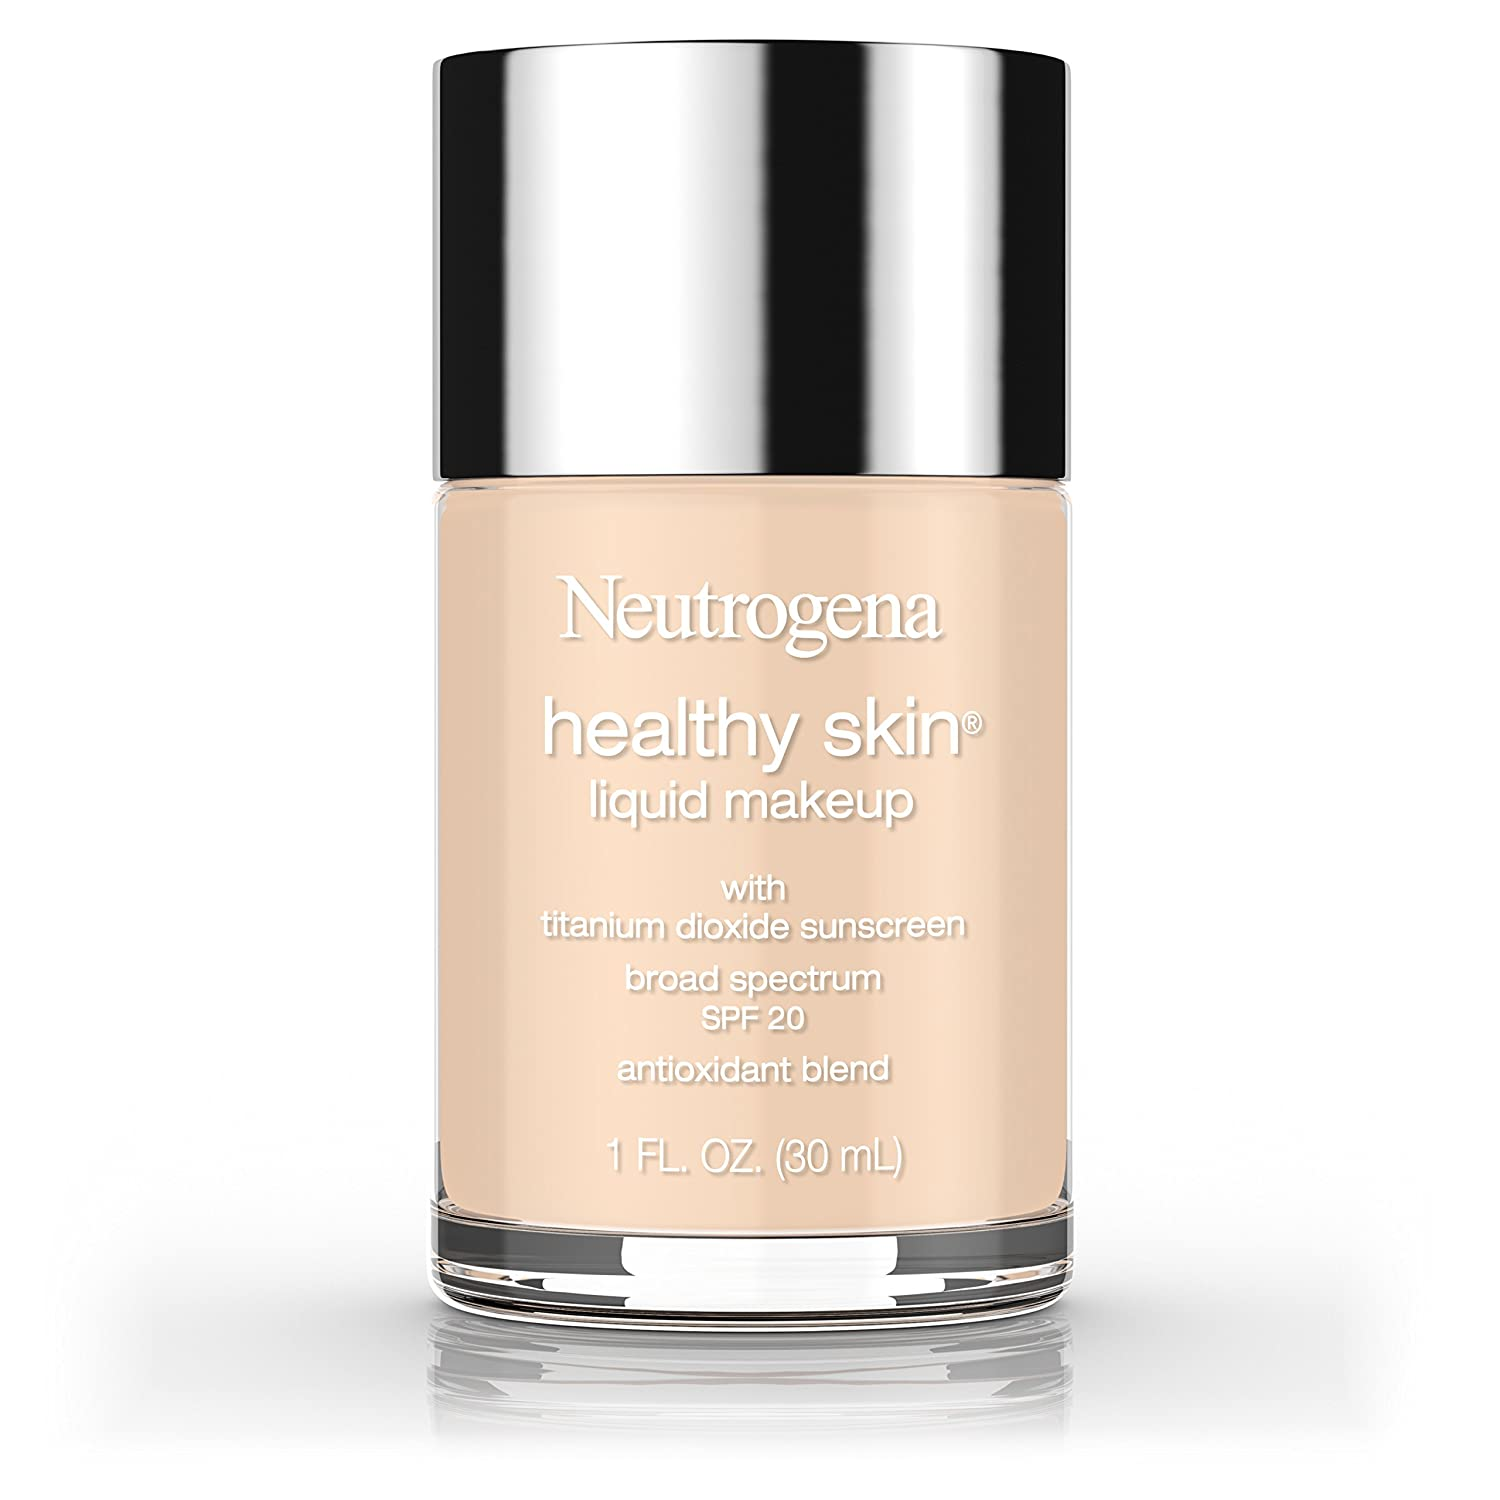 Neutrogena Healthy Skin Liquid Makeup Foundation, Broad Spectrum Spf 20, 70 Fresh Beige, 1 Oz. Neutrogena Cosmetics 686700700